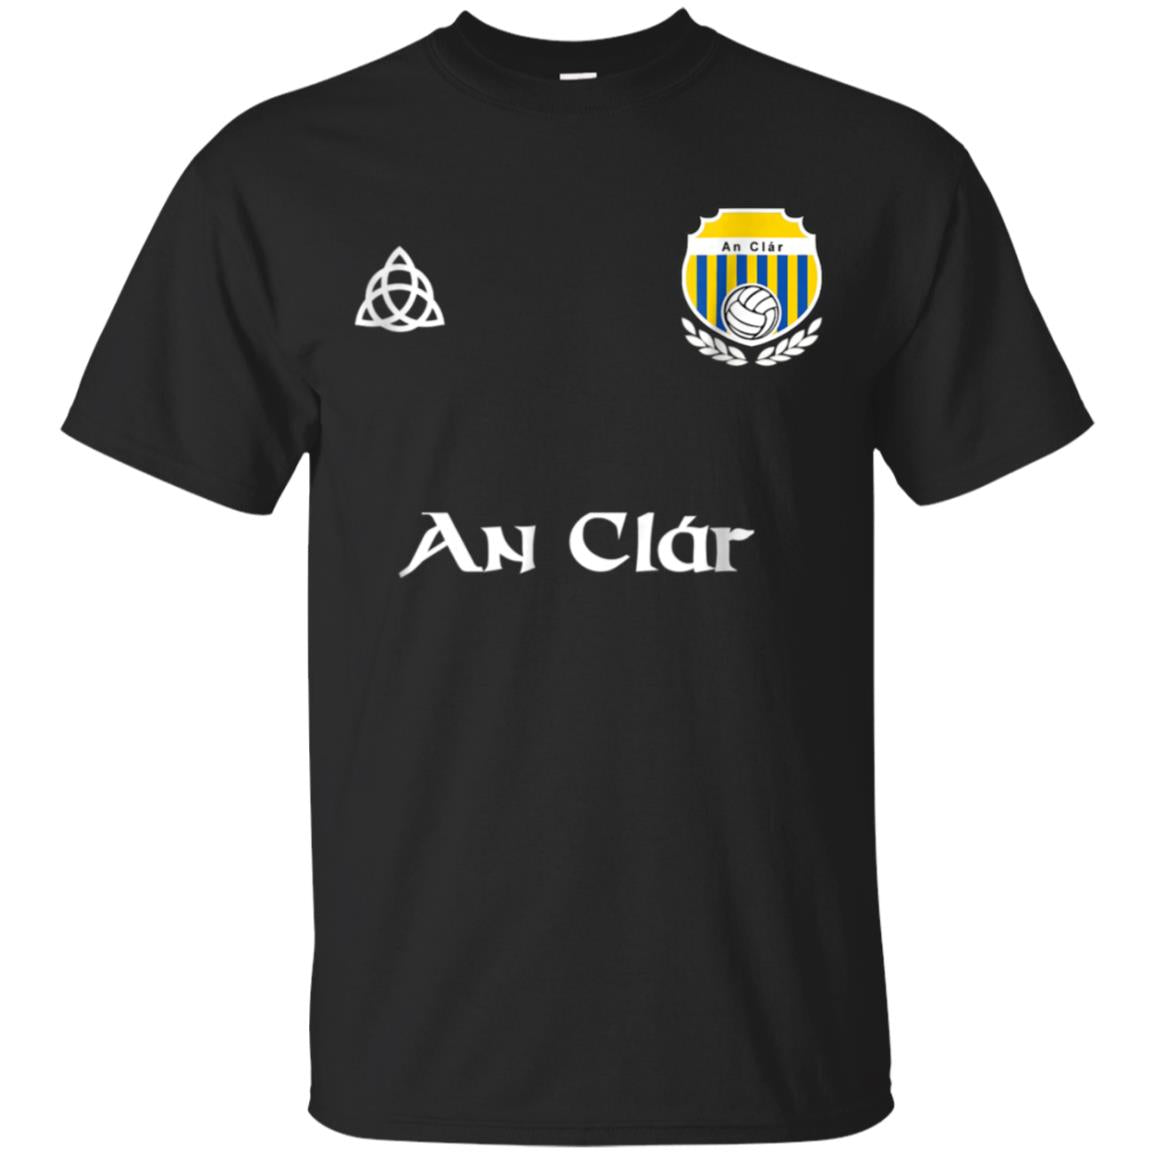 Clare An Clar Gaelic Football Jersey 99promocode